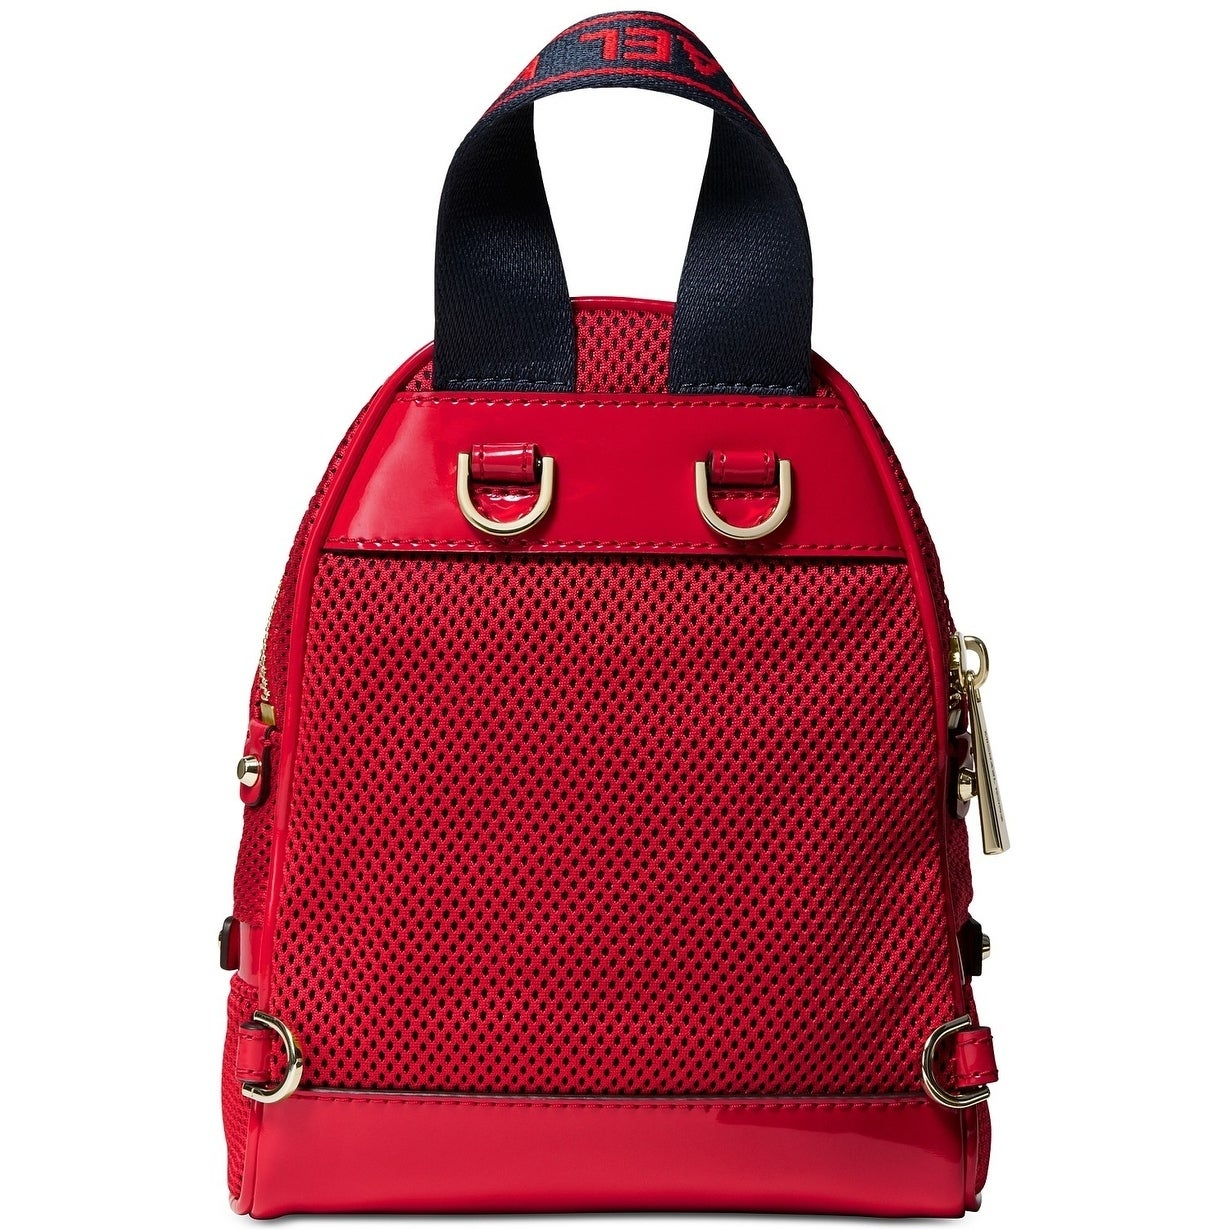 071f6eb37d202e Shop MICHAEL Michael Kors Rhea Zip Extra Small Logo Backpack Red/Gold -  Free Shipping Today - Overstock - 28021382